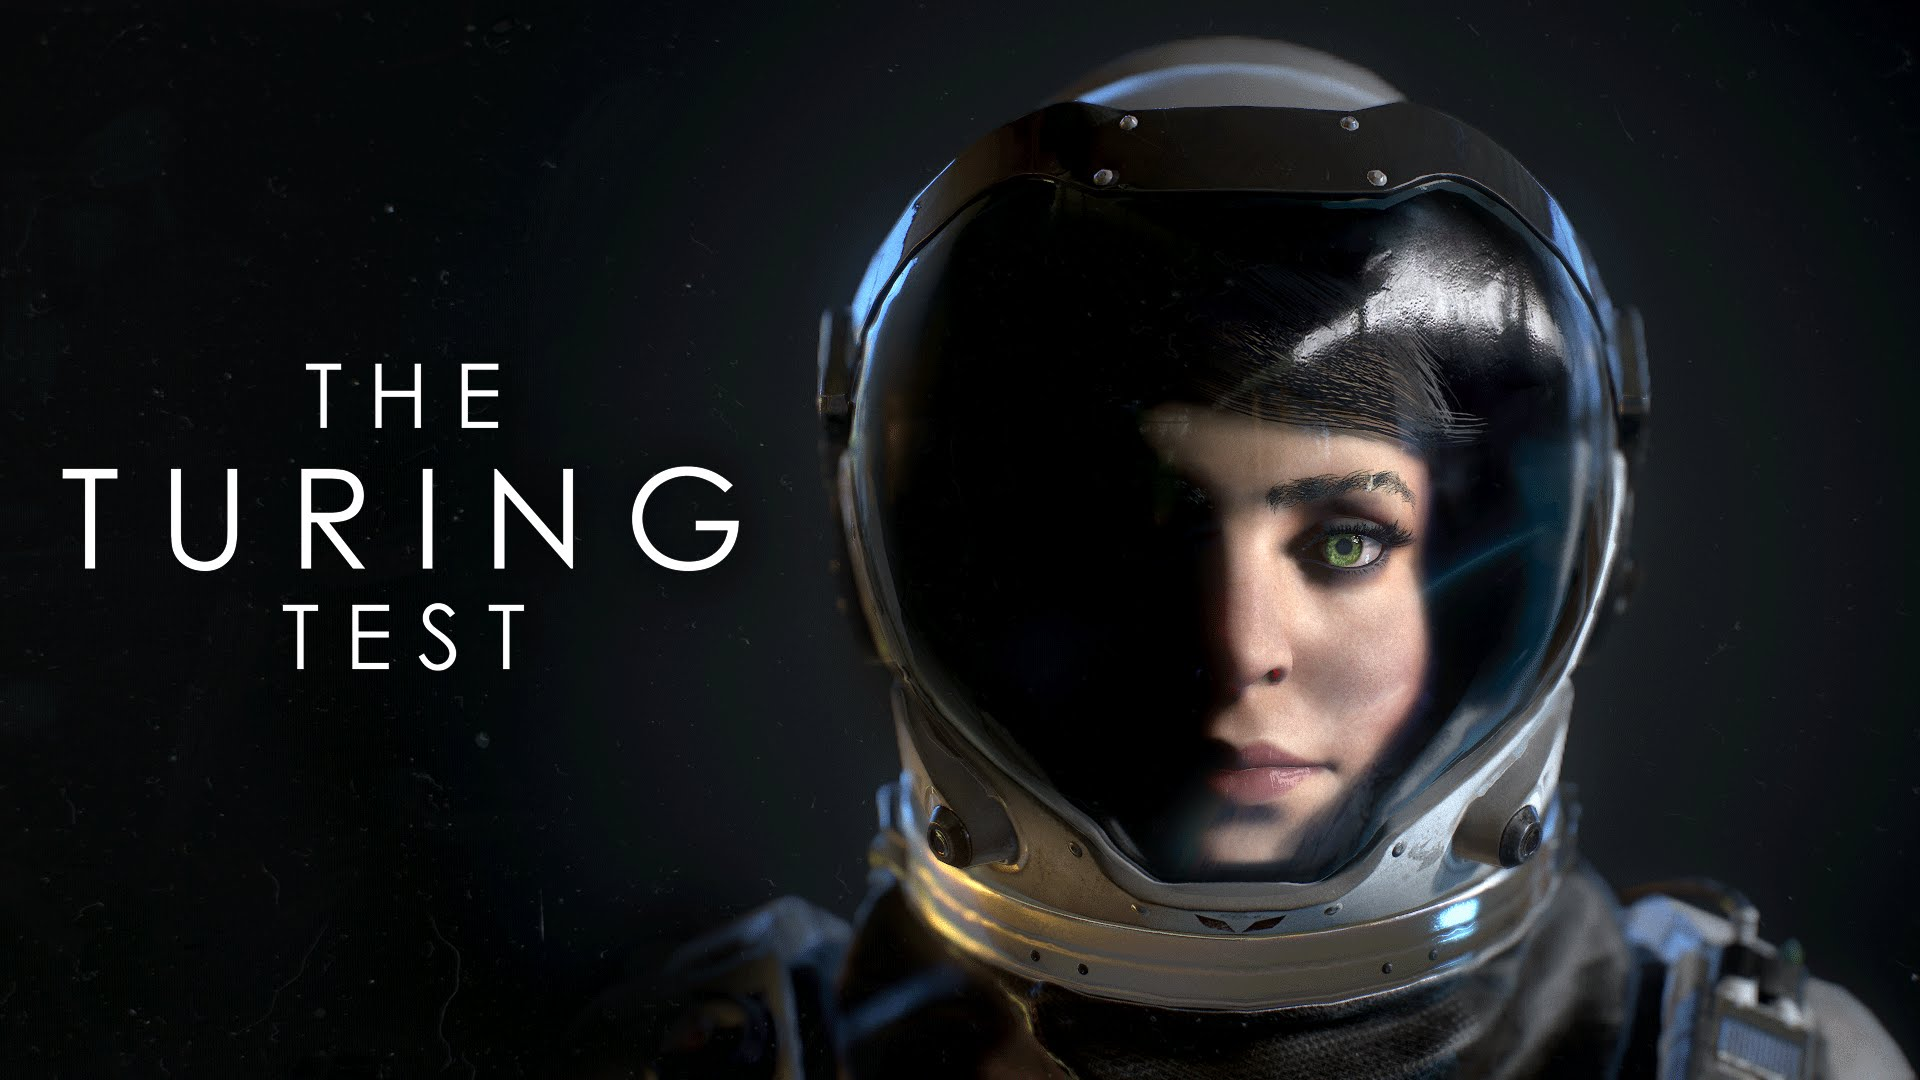 the turing test wallpaper 61447